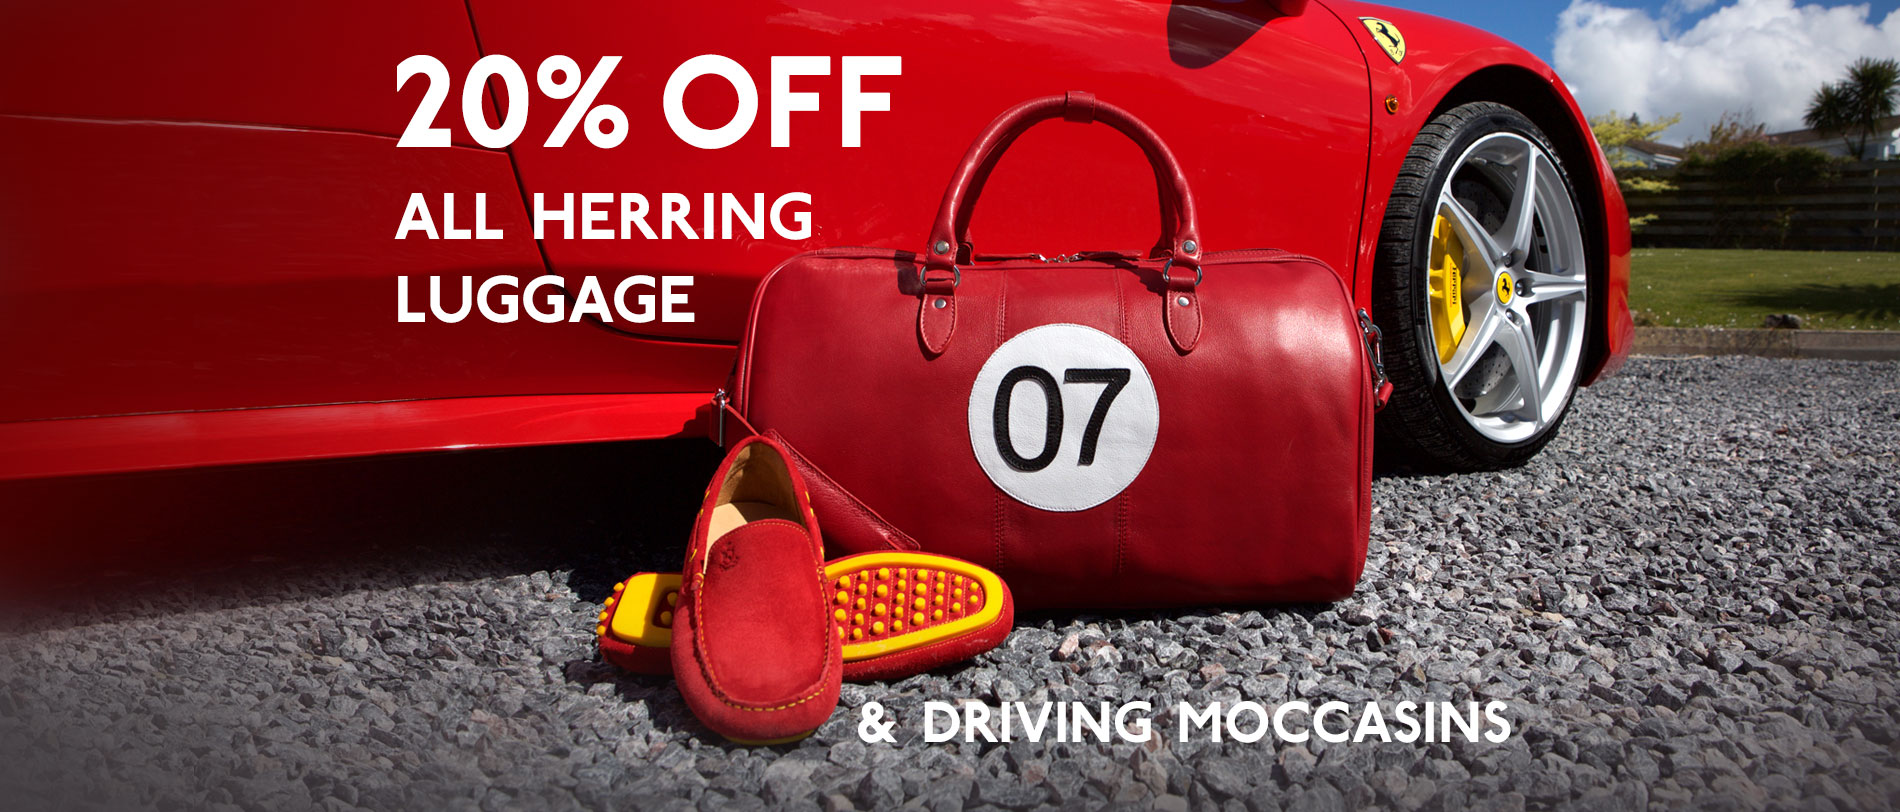 20% off Luggage and Driving Moccasins this April